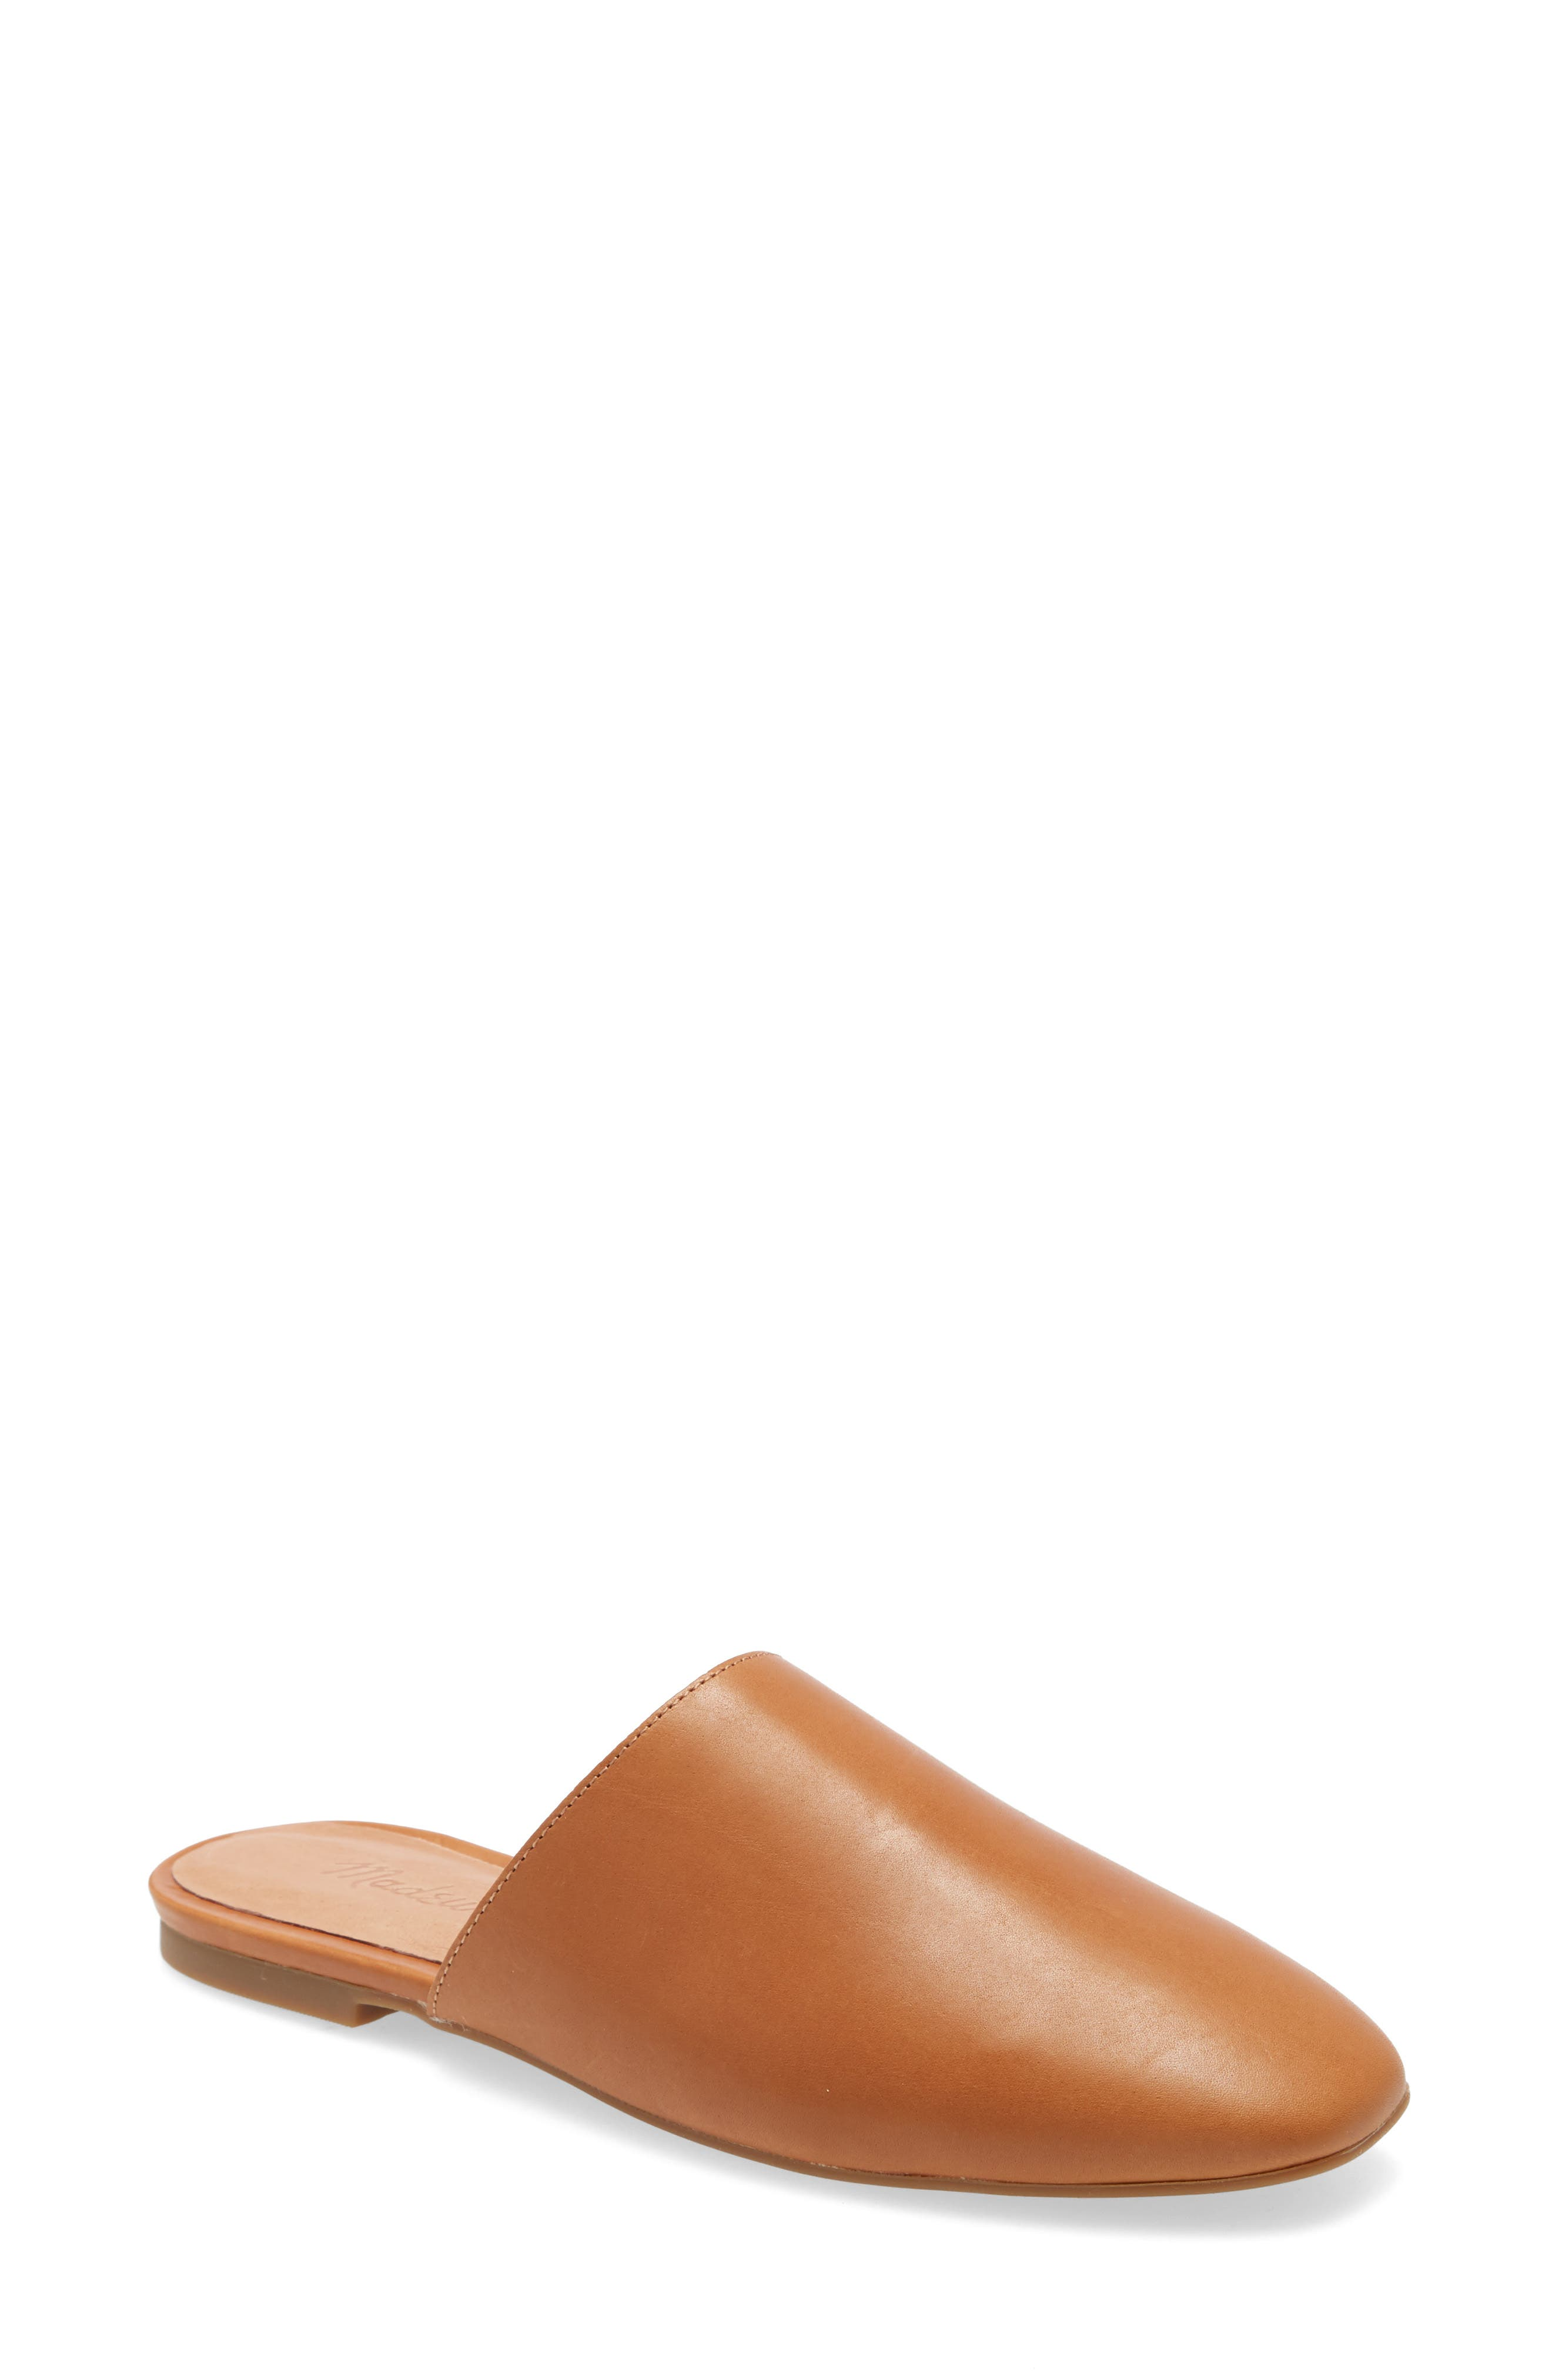 A slip-on version of Madewell\\\'s favorite minimalist flat, this modern mule has a squared-off shape we love. So easy to slide on (and off), this mule has that effortless cool-girl energy. And, cushiness alert: the MWL Cloudlift Lite padding feels like walking on a-well, you know. Style Name: Madewell The Cory Mule. Style Number: 5986472. Available in stores.